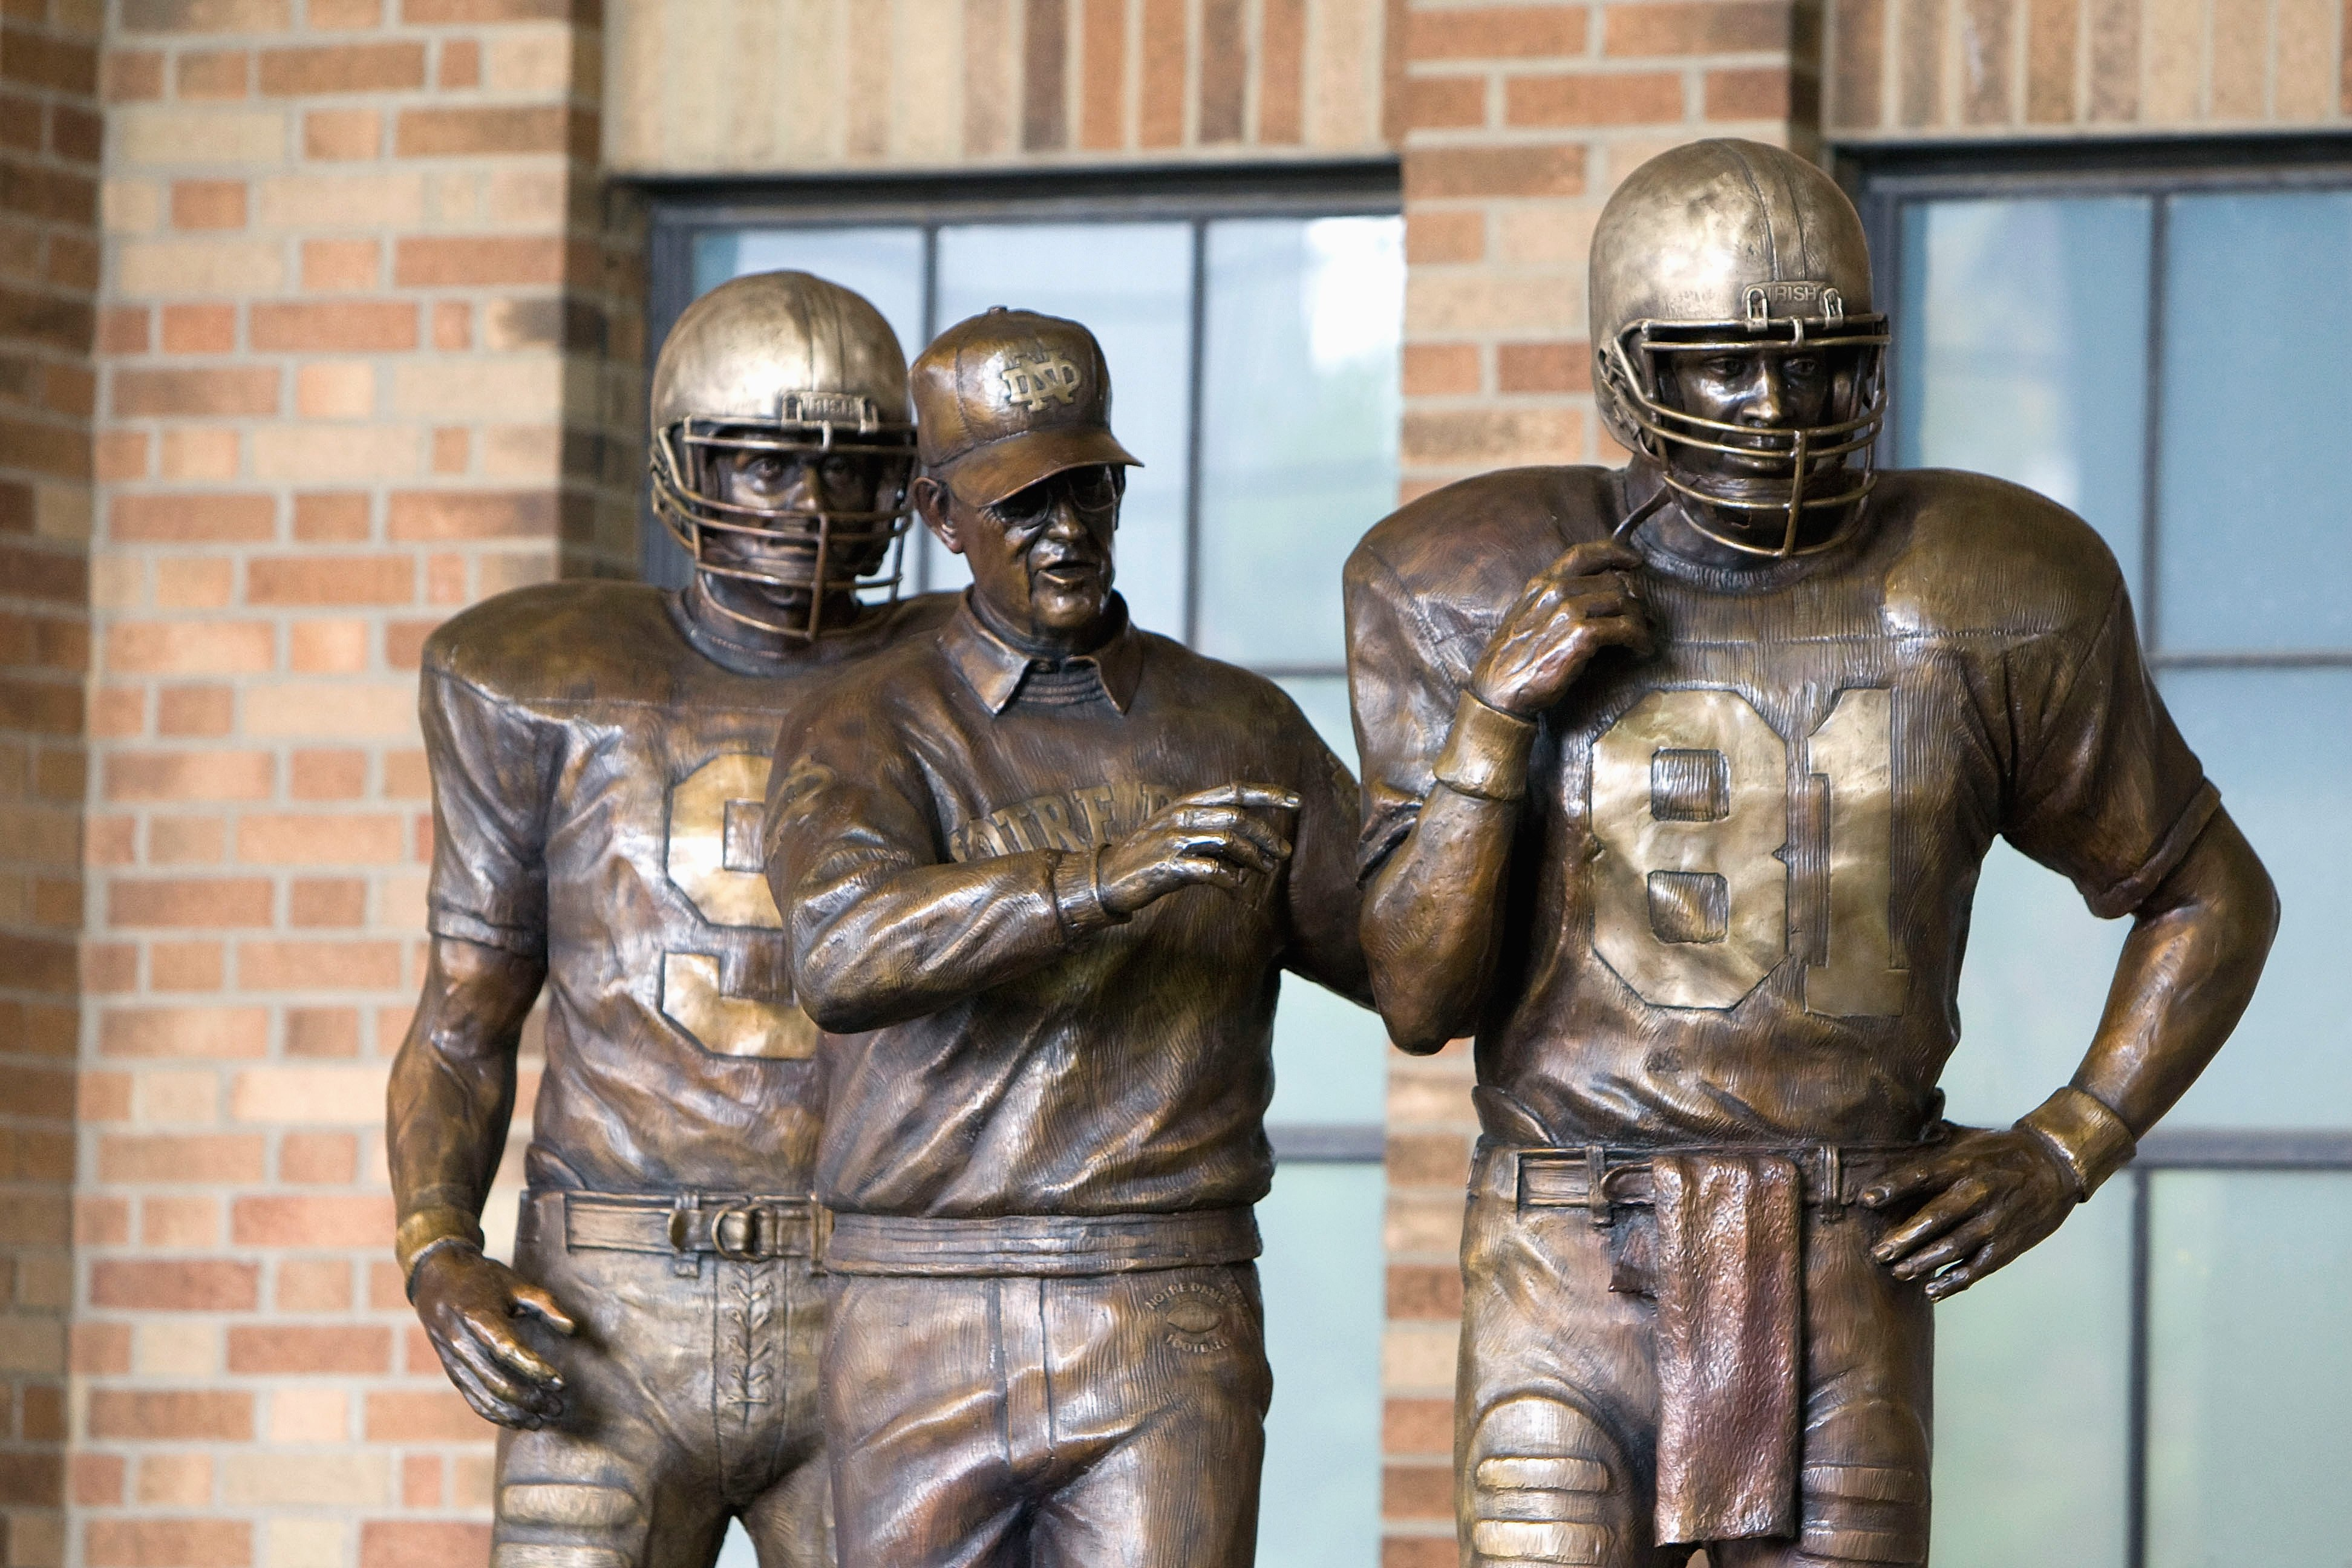 SOUTH BEND,IN - SEPTEMBER 13:  Former head coach Lou Holtz of the Notre Dame Fighting Irish has a statue unveiled before the game against the Michigan Wolverines on September 13, 2008 at Notre Dame Stadium in South Bend, Indiana. (Photo by: Gregory Shamus